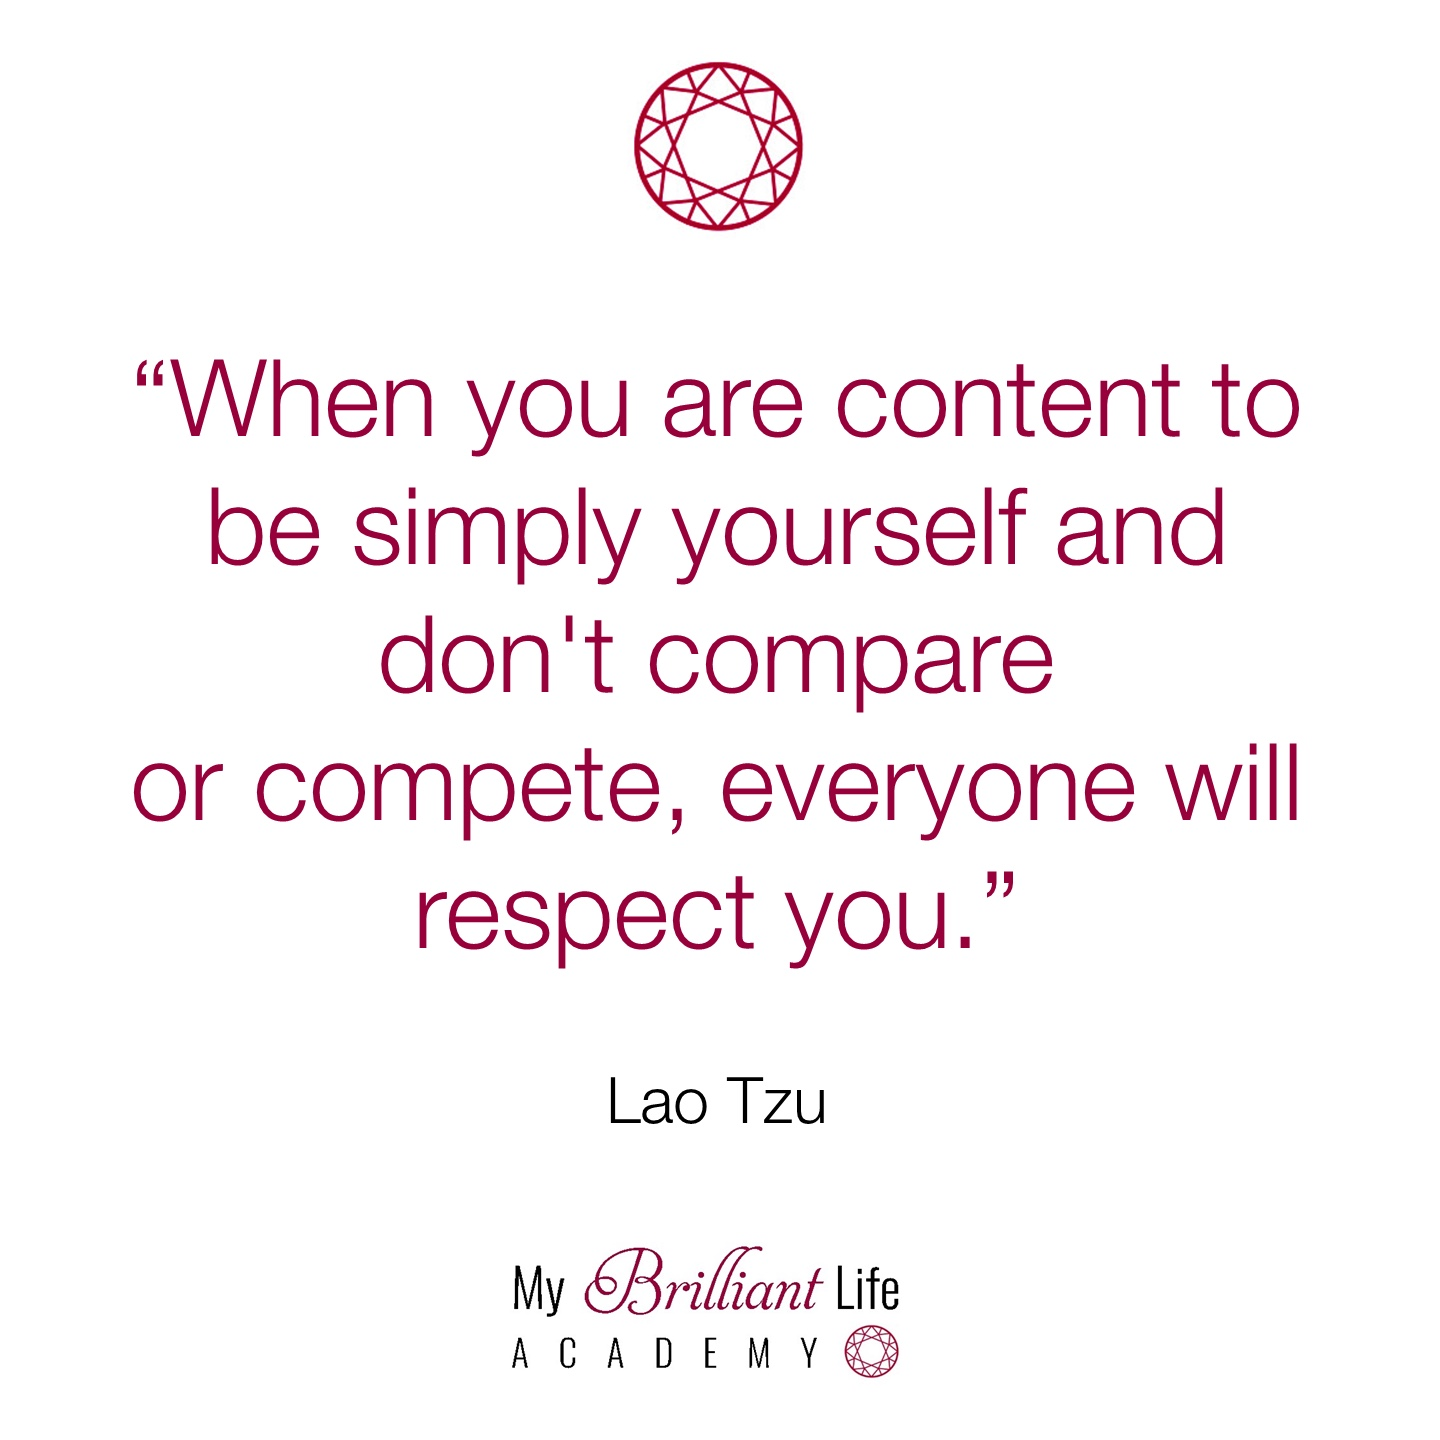 Be simply yourself - lao tzu